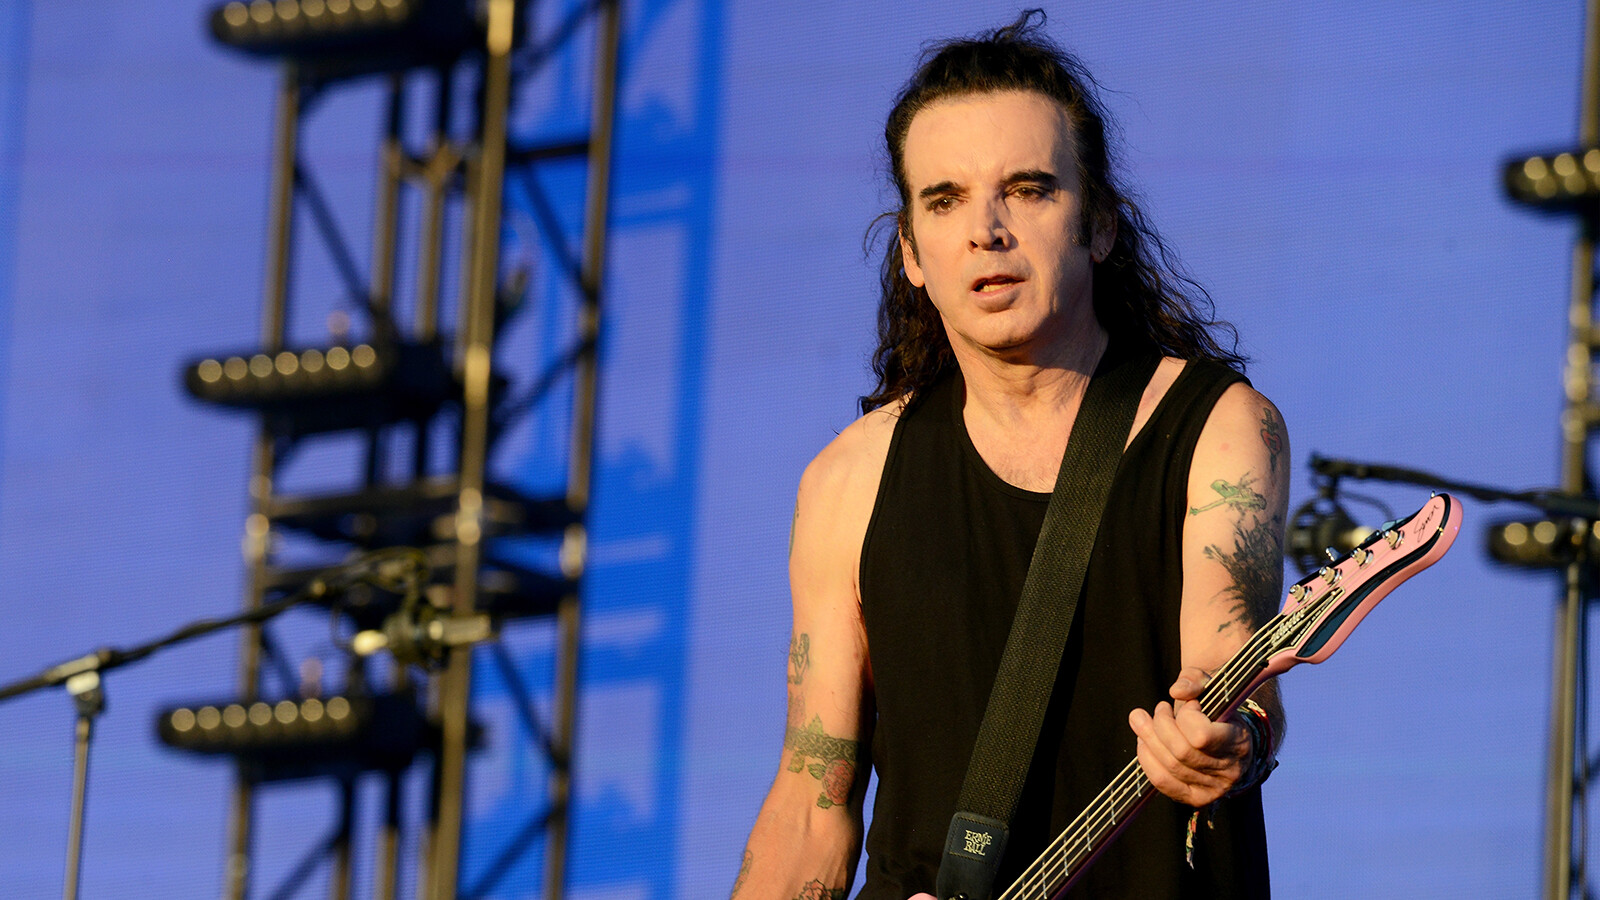 The Cure's Simon Gallup 'fed up of betrayal' and leaving band after 40 years